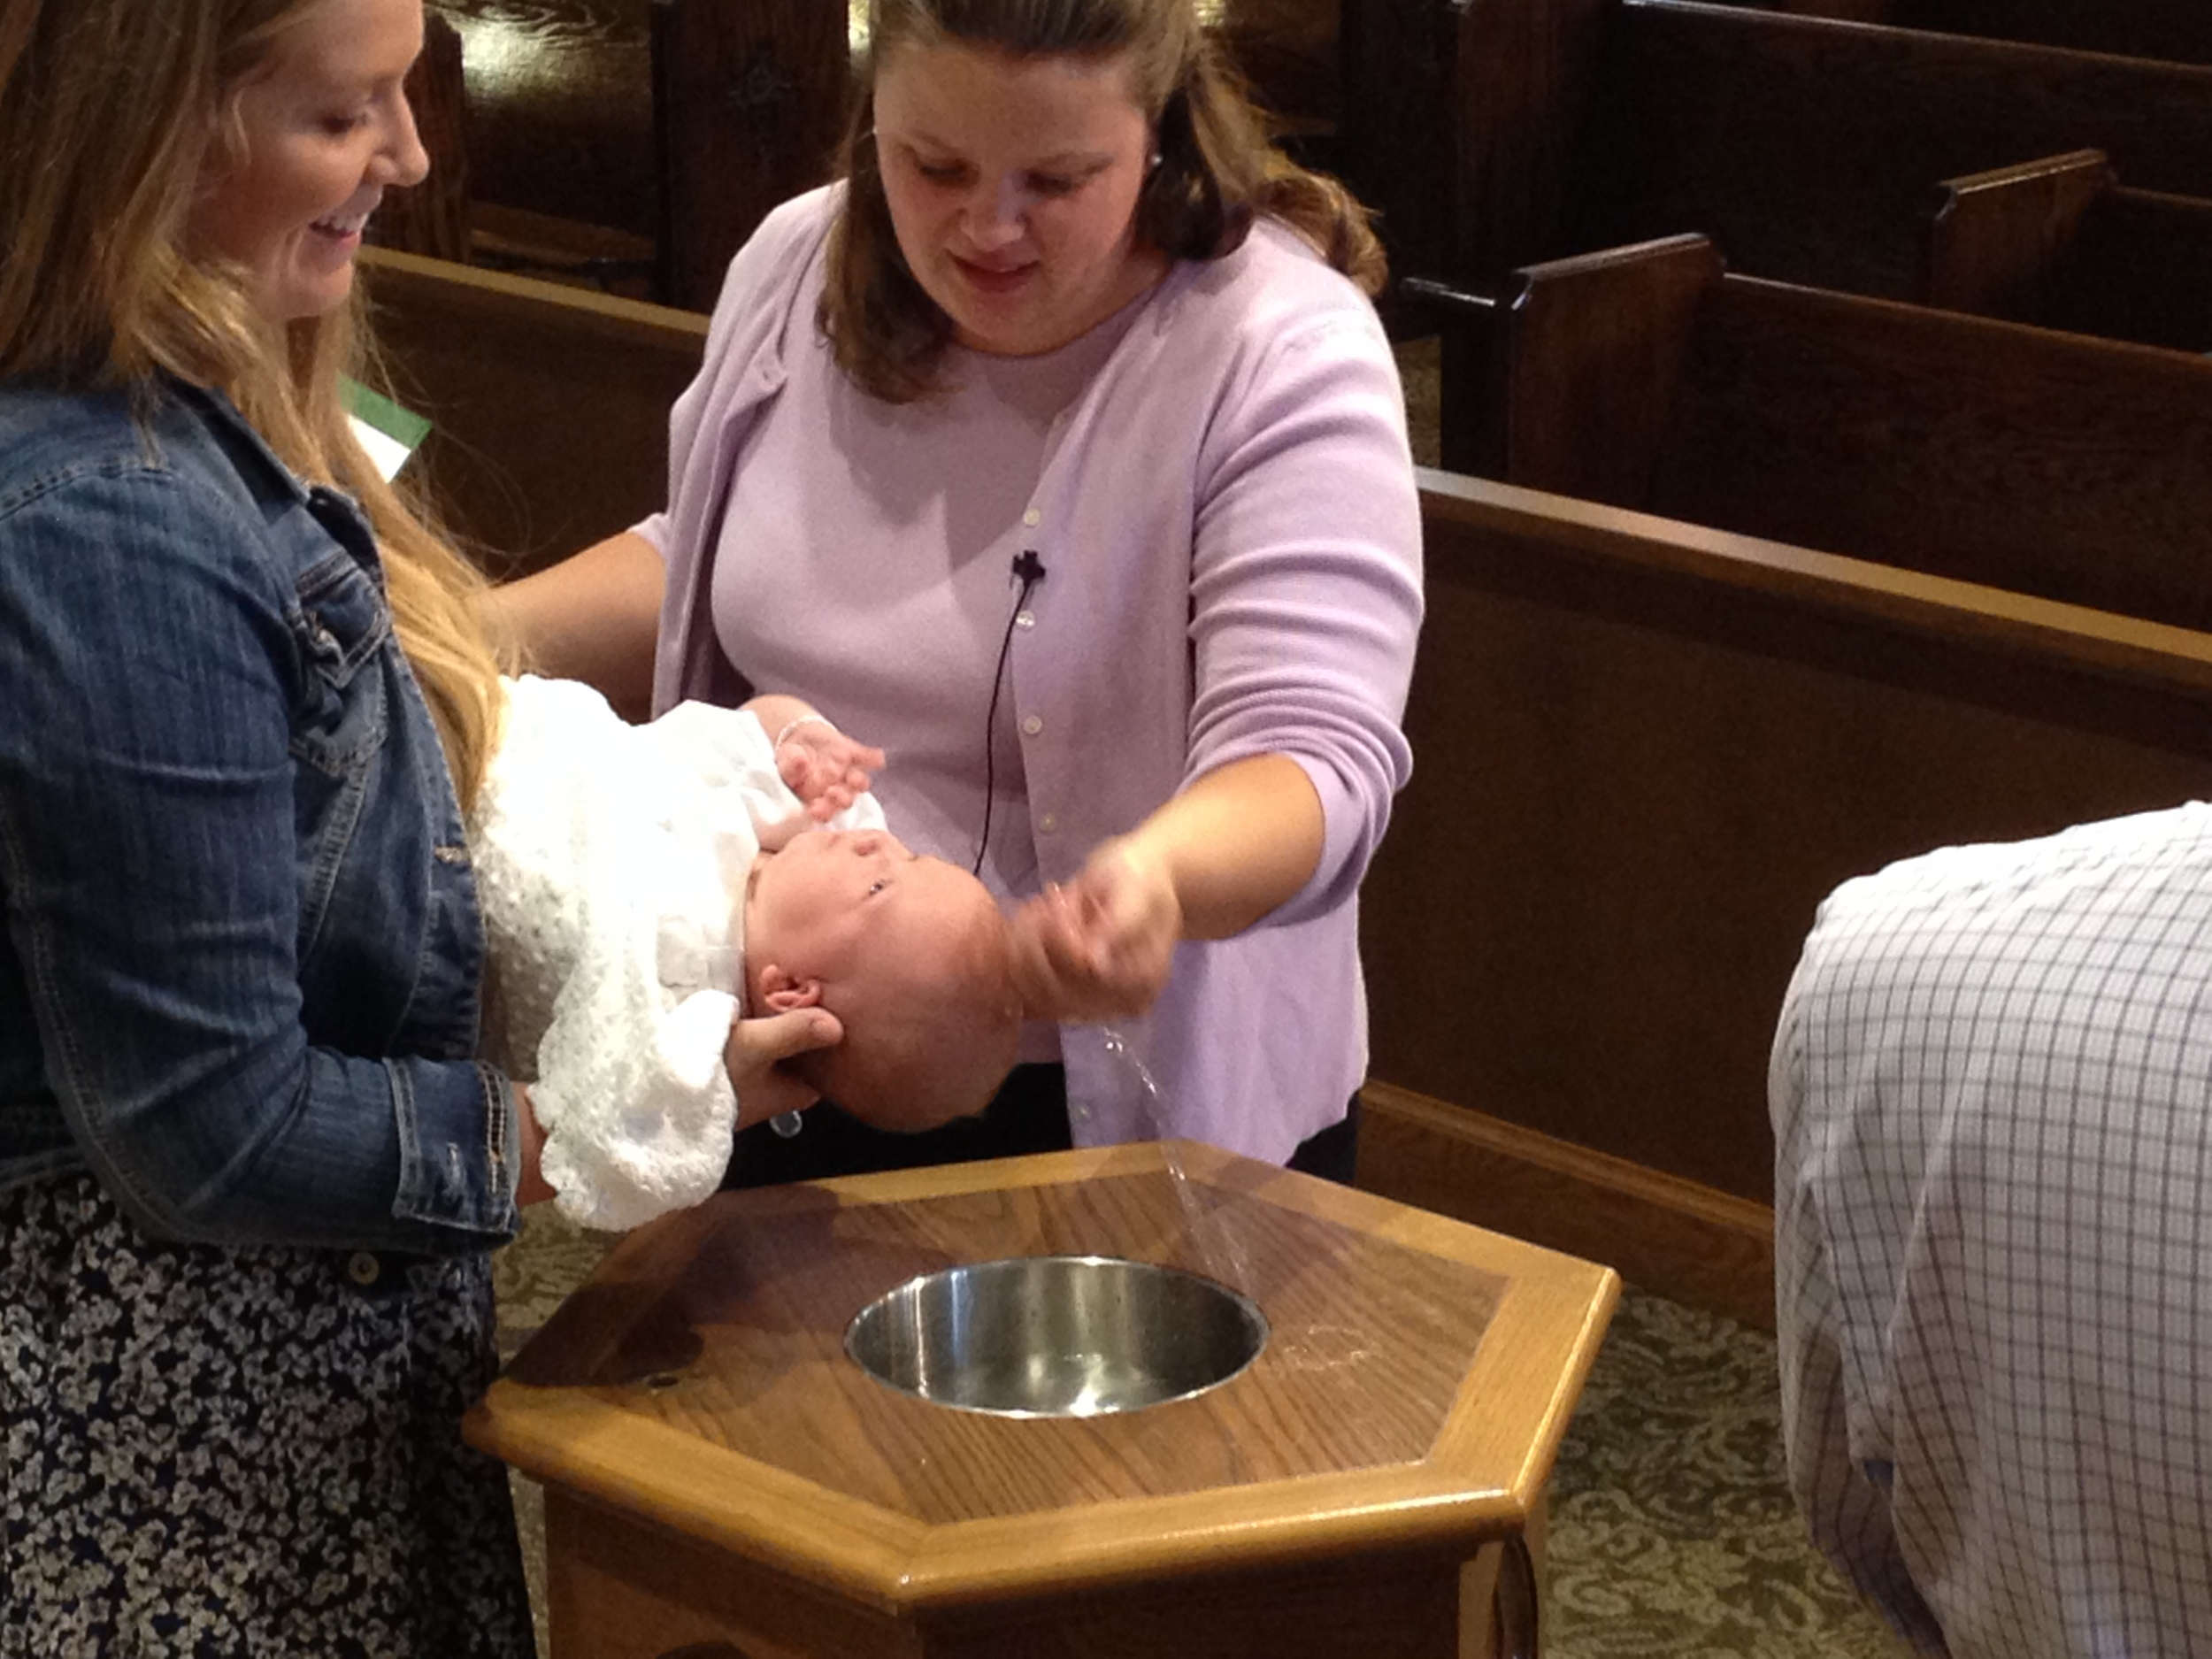 Baptisms happen during regular worships services of the congregation and are celebrated for the gift of God poured out through water and Word. Through baptism, God claims us and makes us children of God. St. John's offers regular Pre-Baptism classes for those interested in scheduling a baptism.